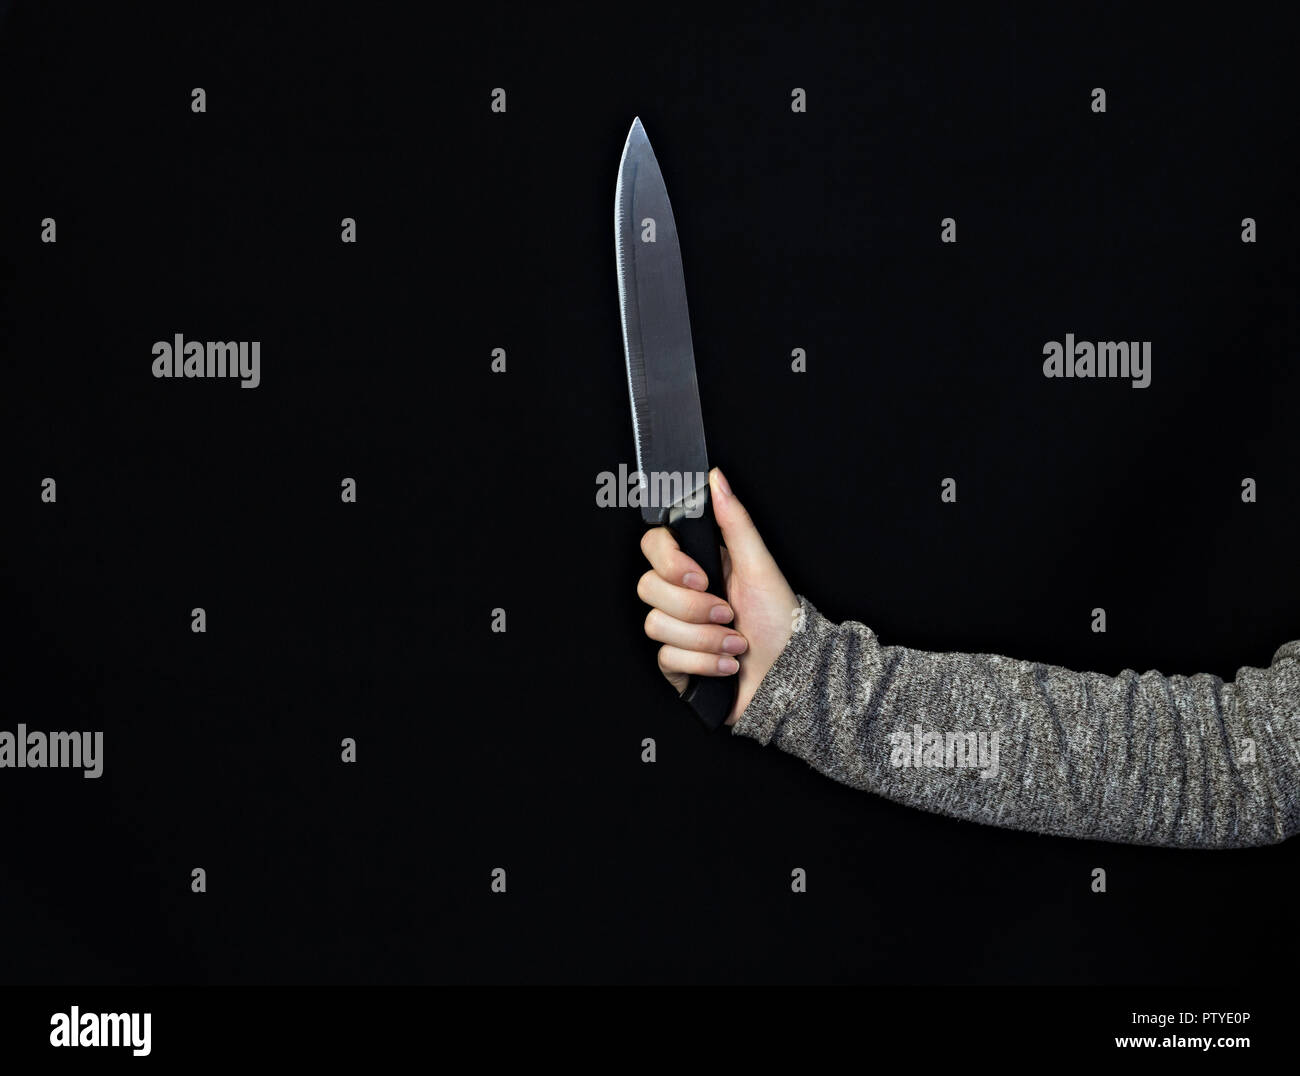 Hand of a girl with a knife on a black background, close-up, knife - Stock Image